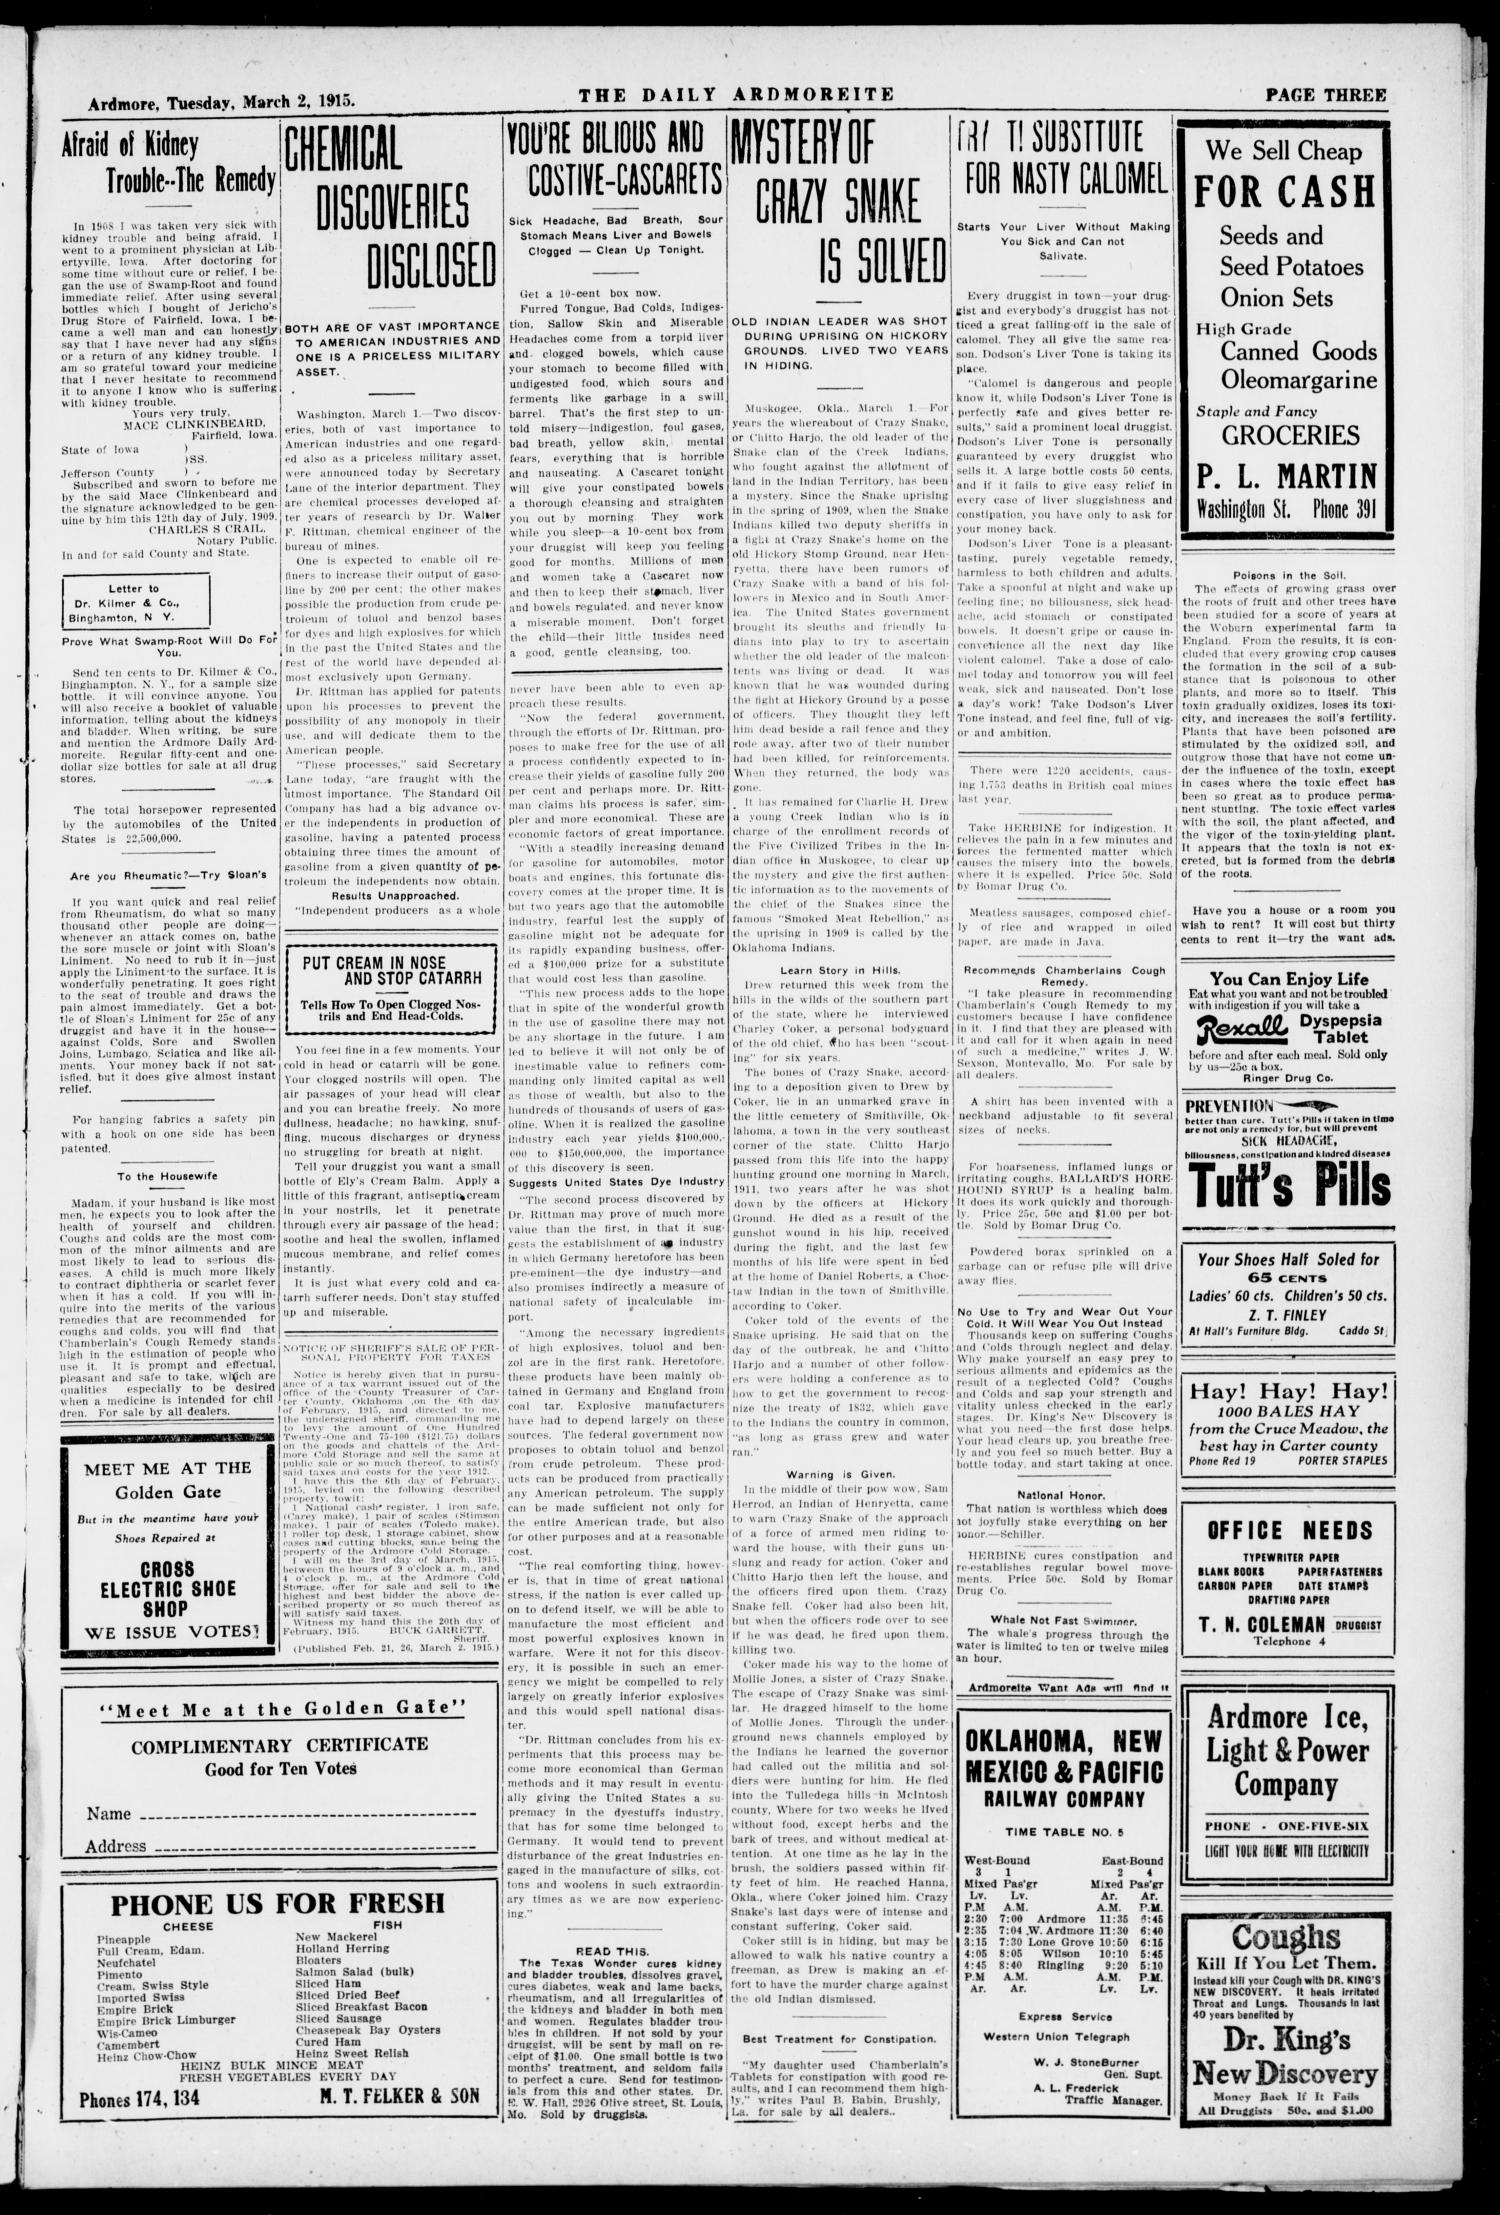 The Daily Ardmoreite. (Ardmore, Okla.), Vol. 21, No. 125, Ed. 1 Tuesday, March 2, 1915                                                                                                      [Sequence #]: 3 of 8